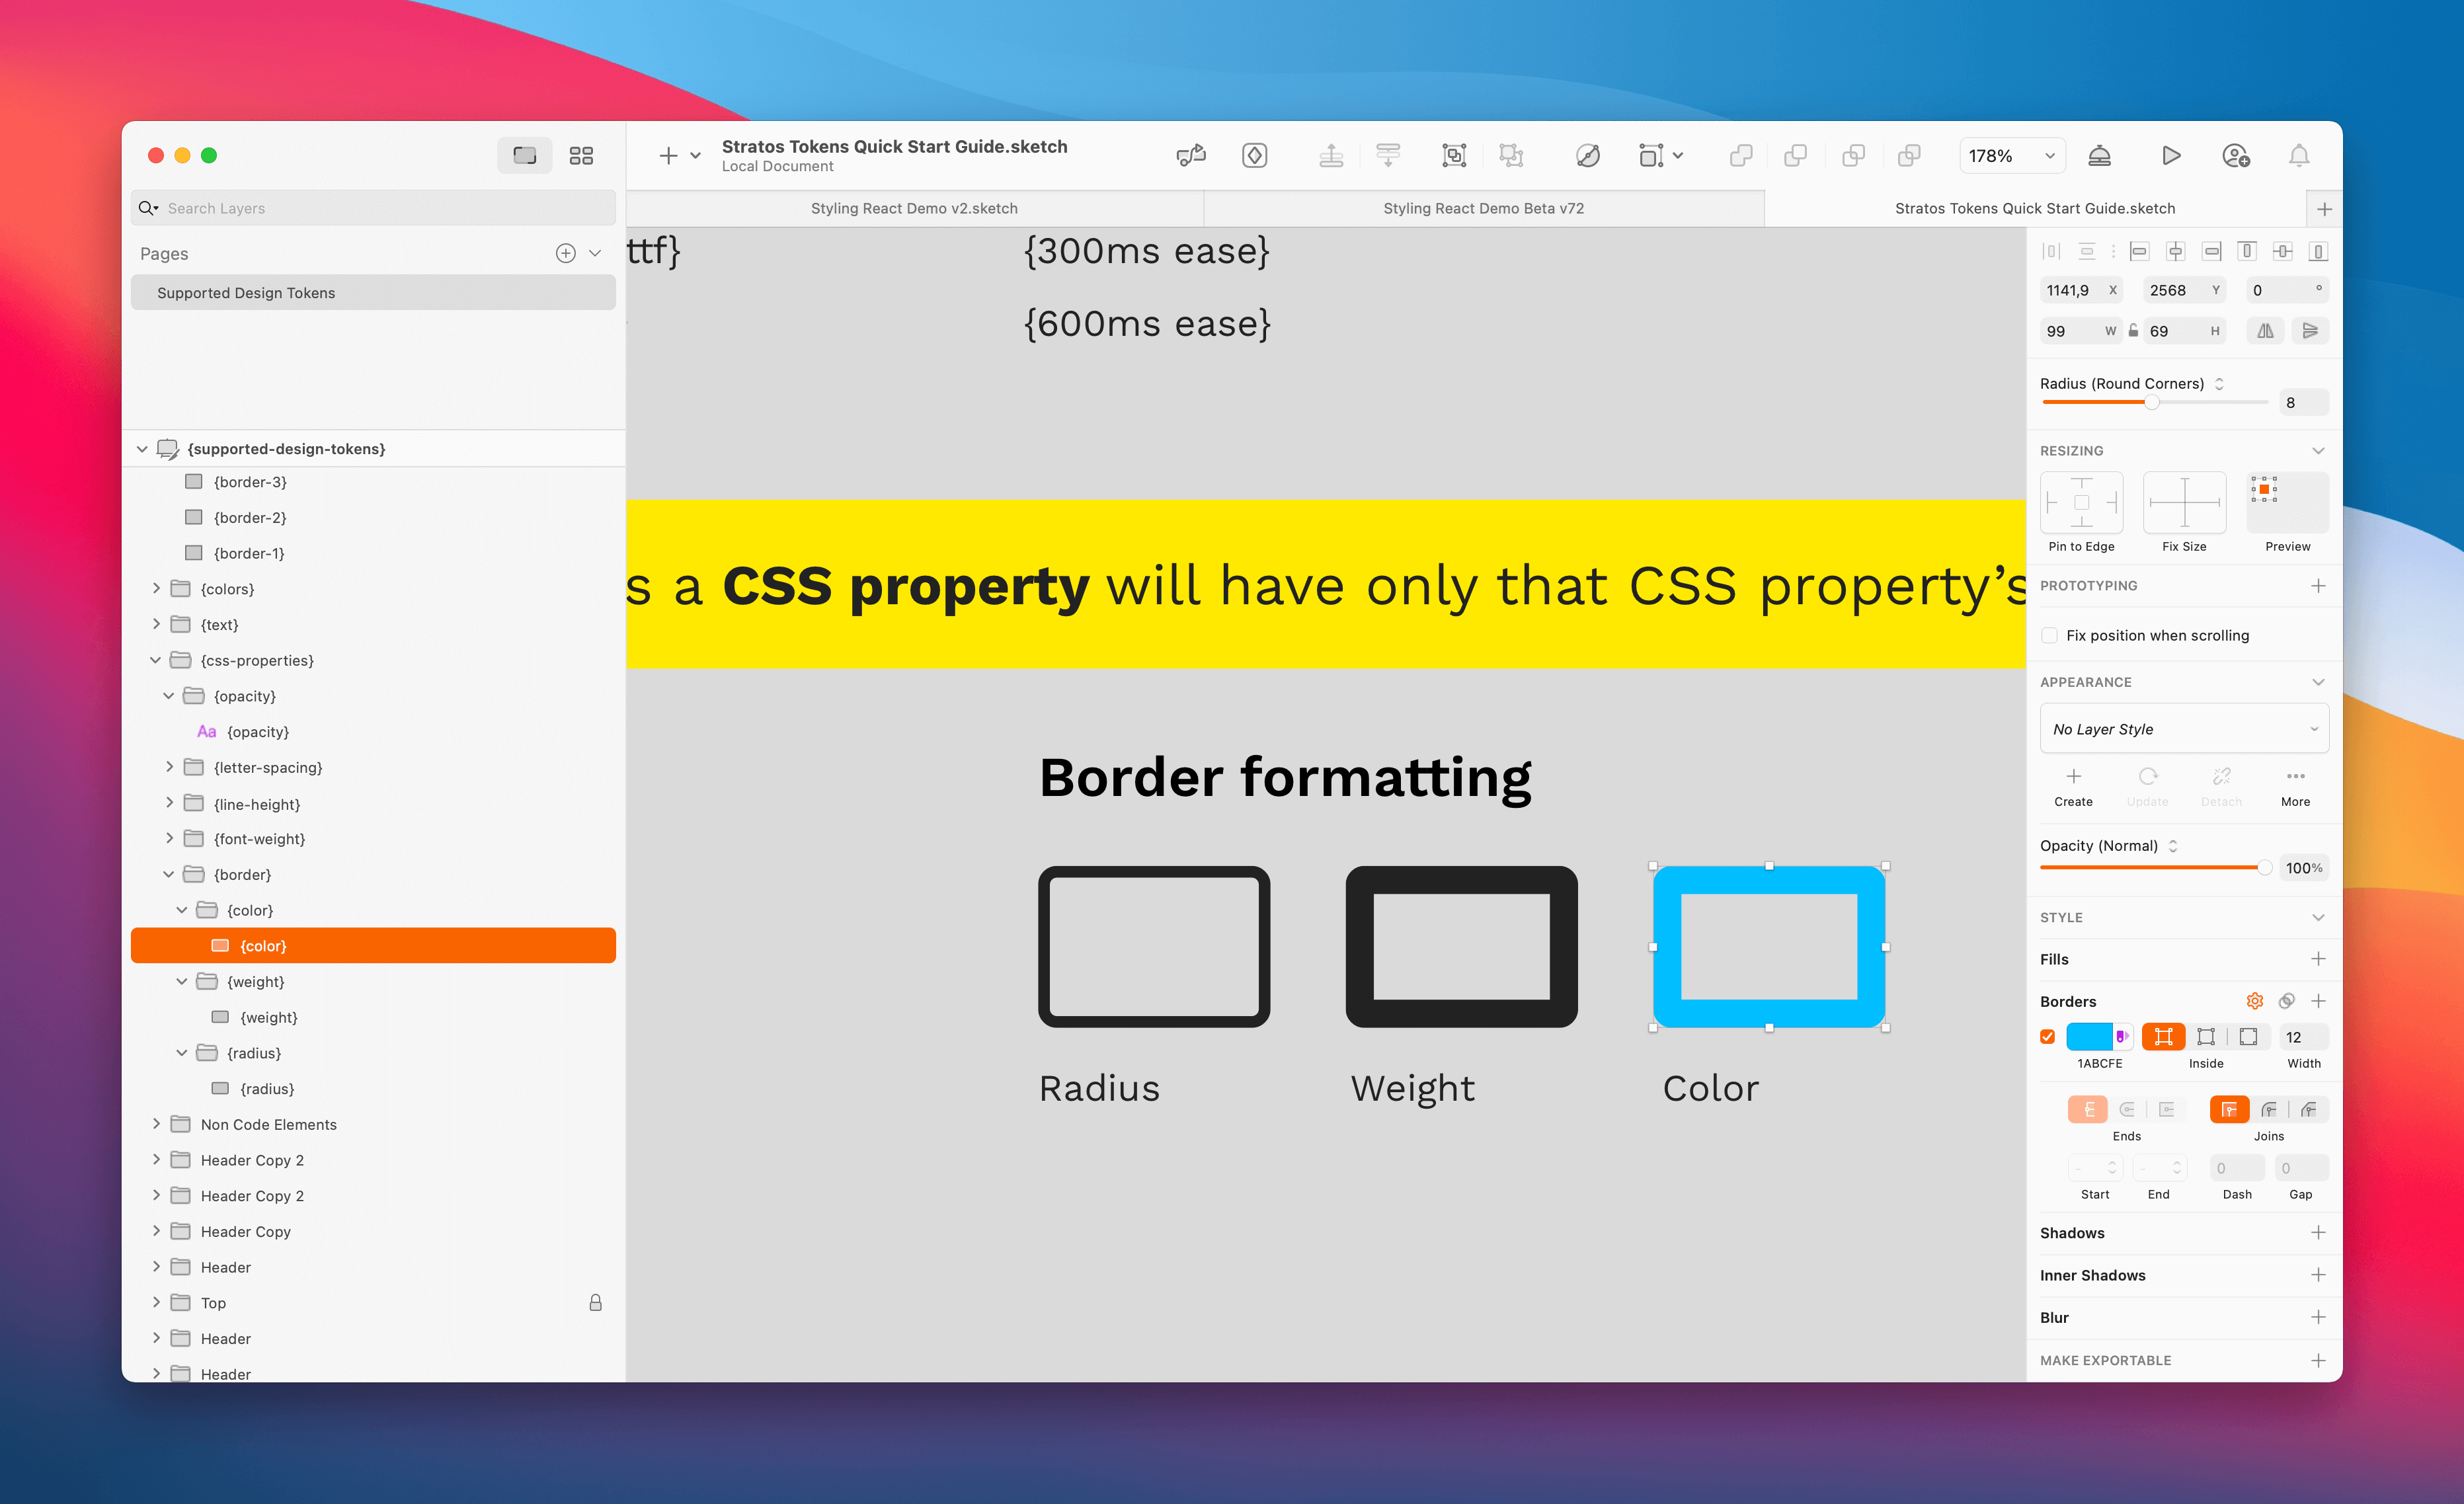 E.g. color outputs only the color of the border